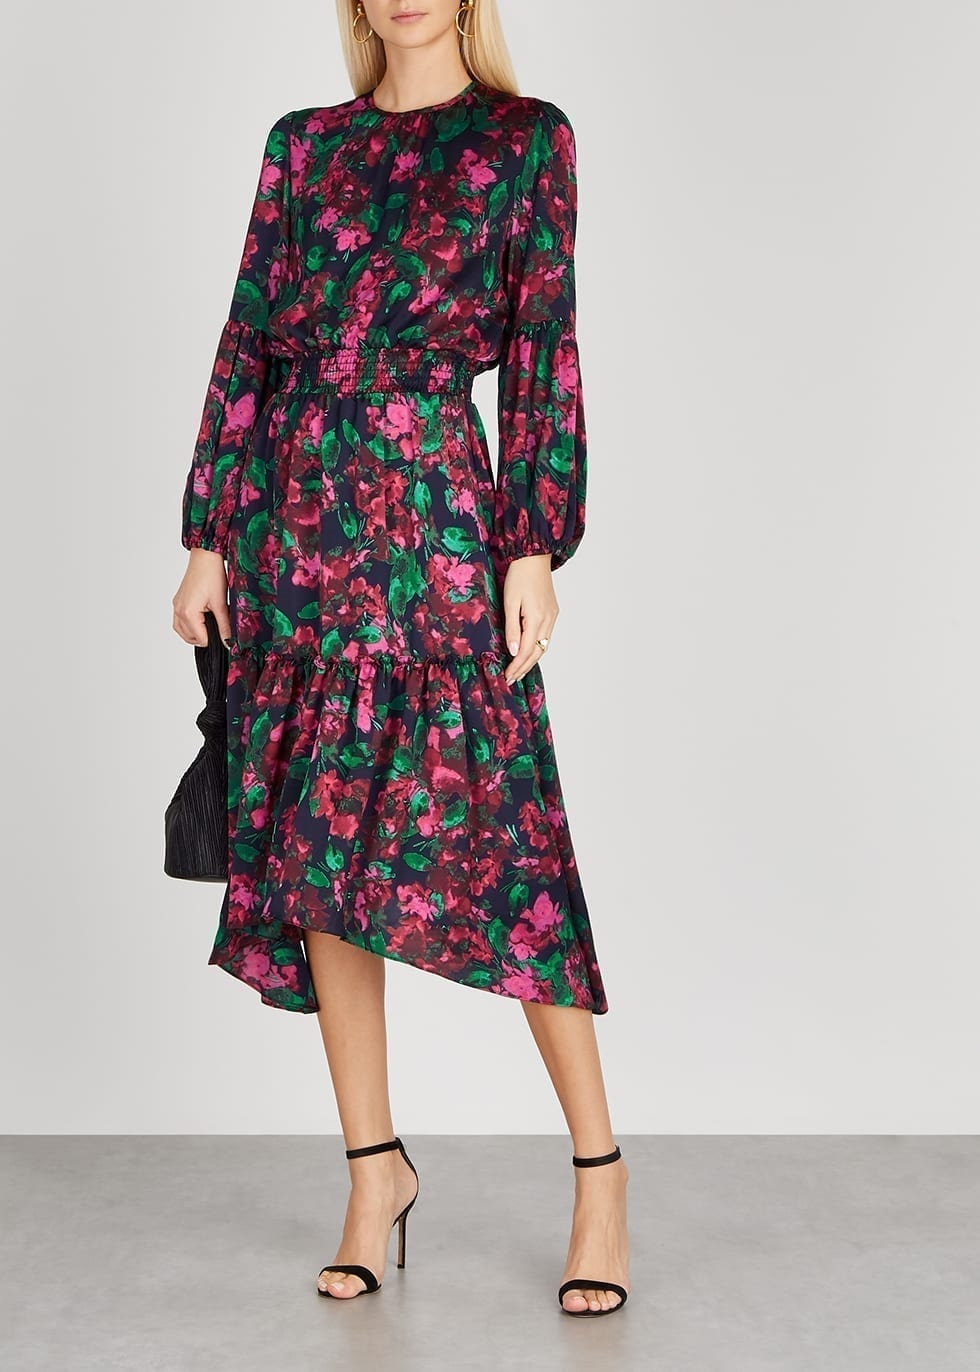 MISA Simone Floral-print Satin Midi Dress